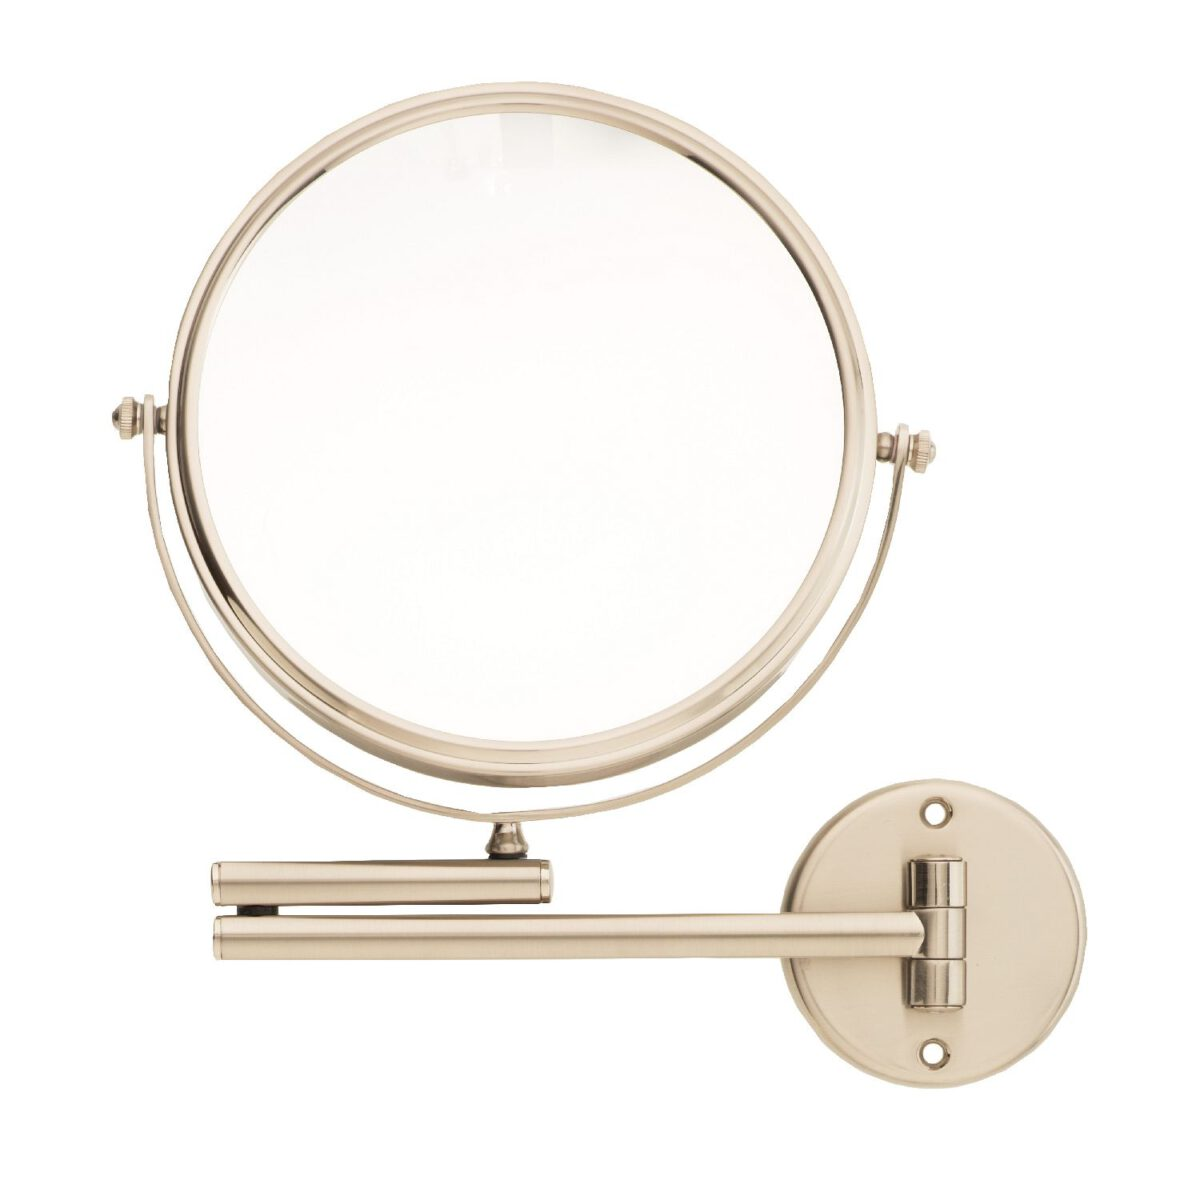 Danielle 20cm Dia Wall Mounted Satin Nickel Mirror 8x Magnifying-0